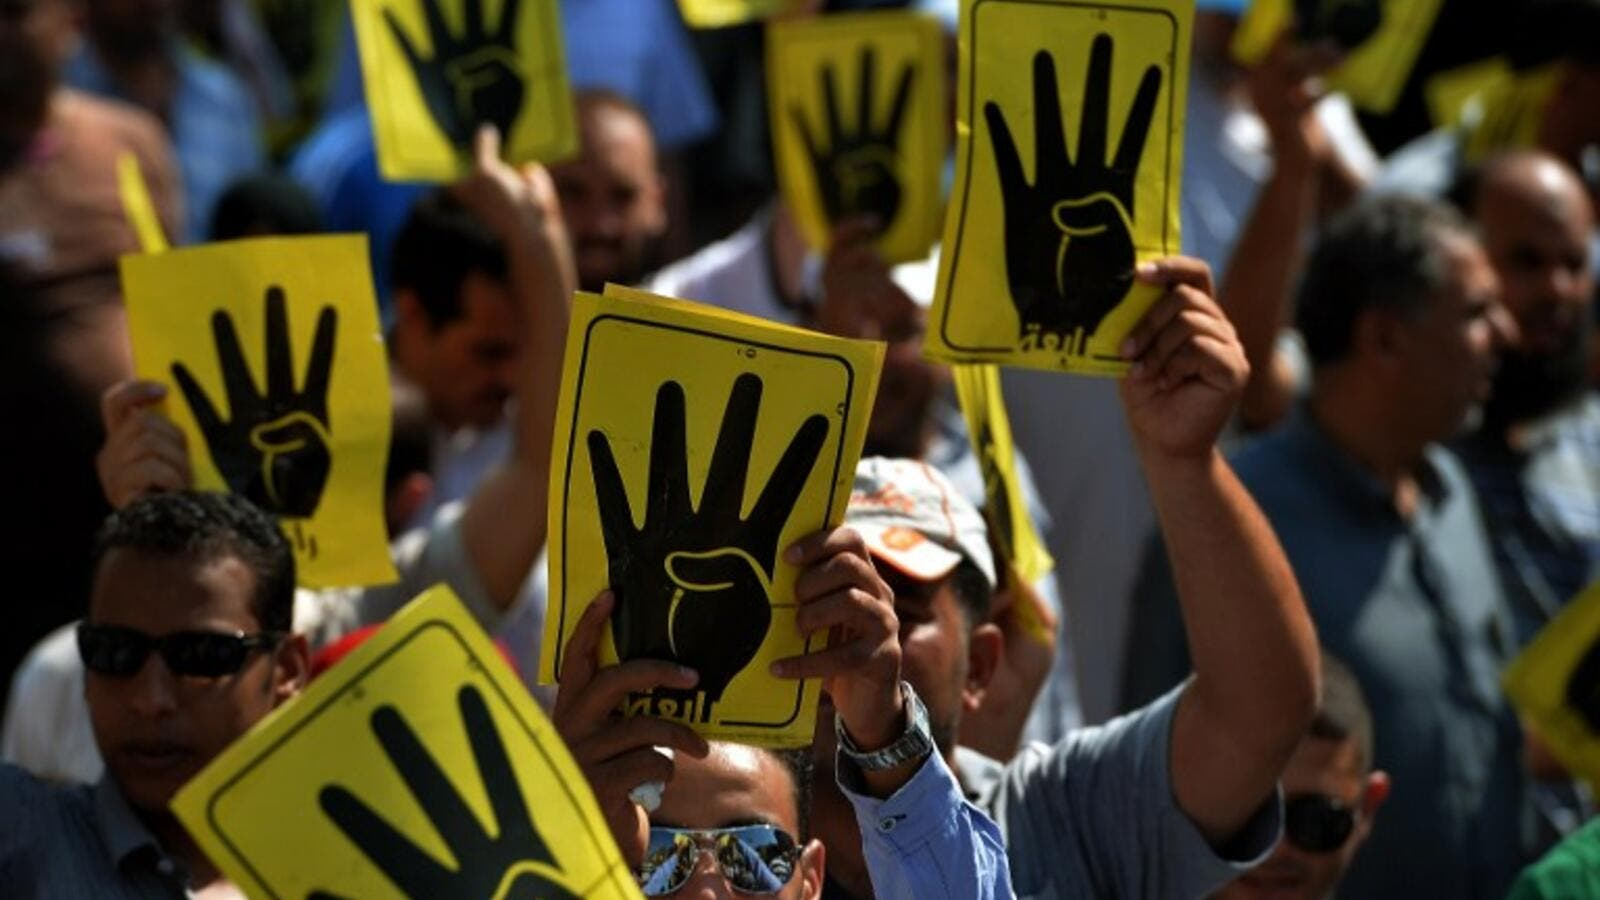 Supporters of ousted Islamist president Mohamed Morsi wave the 'rabaa' sign of four fingers in a show of solidarity with the Muslim Brotherhood movement in Cairo. (AFP/File)